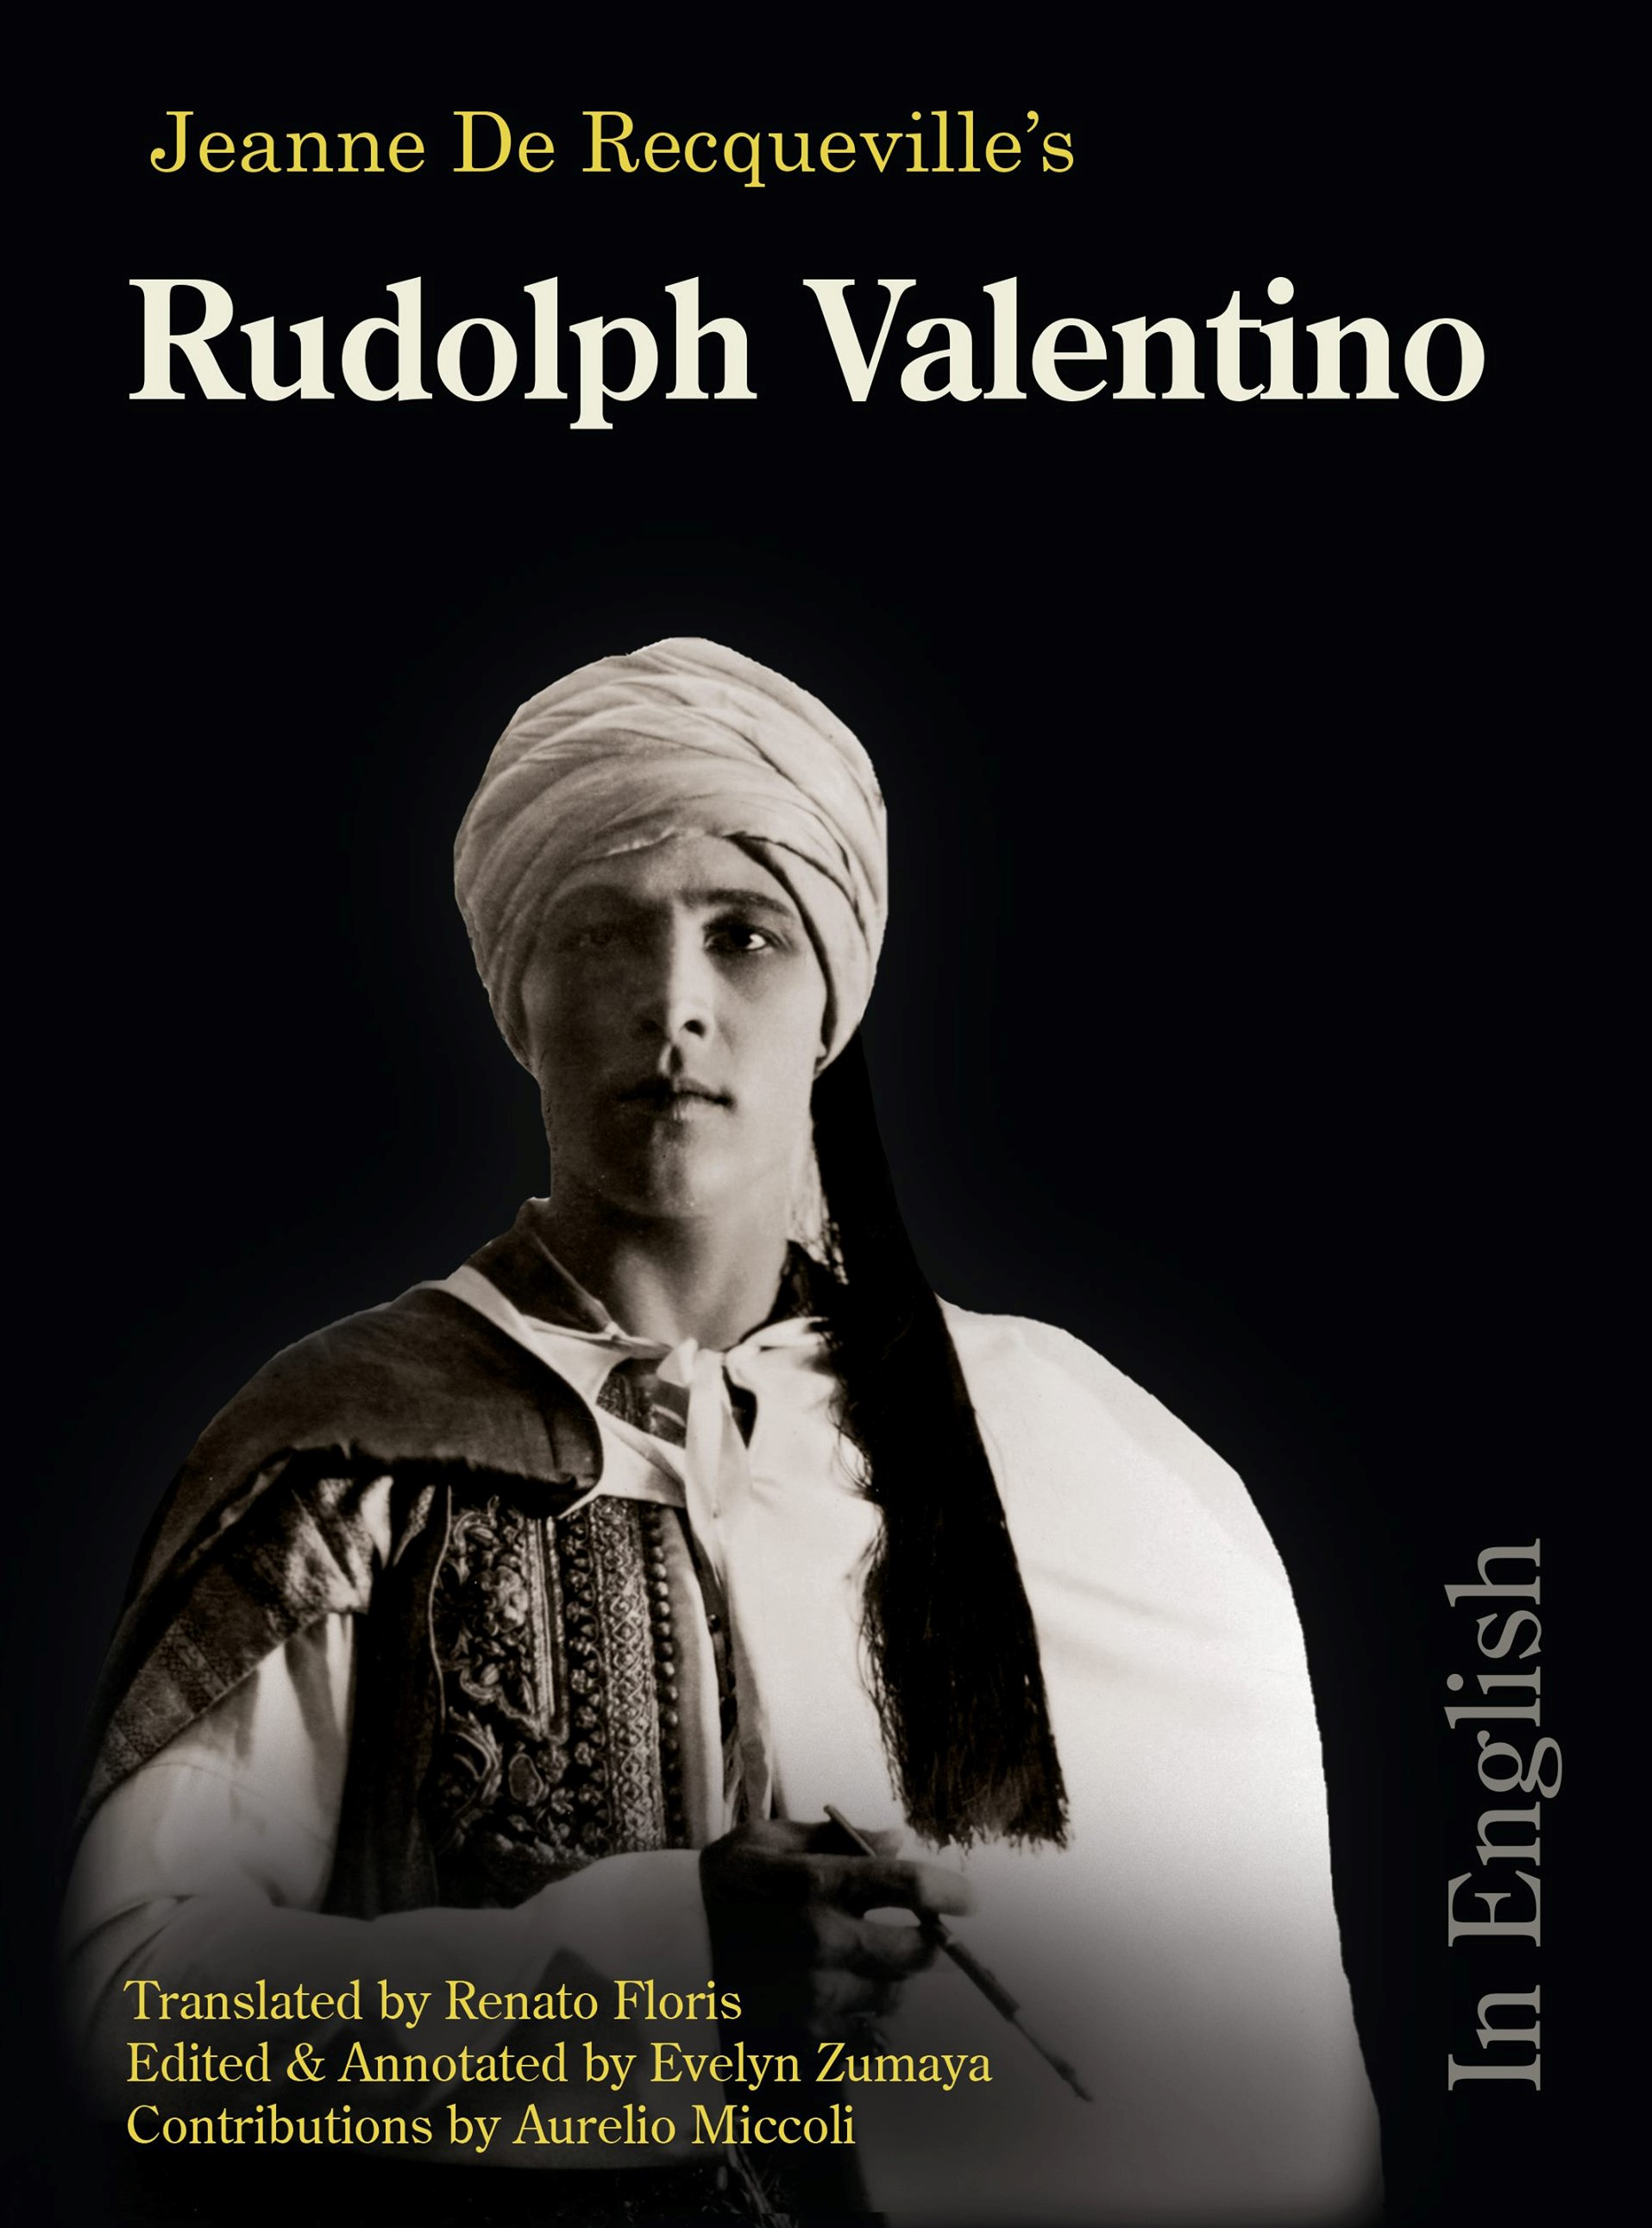 Rudolph Valentino in English